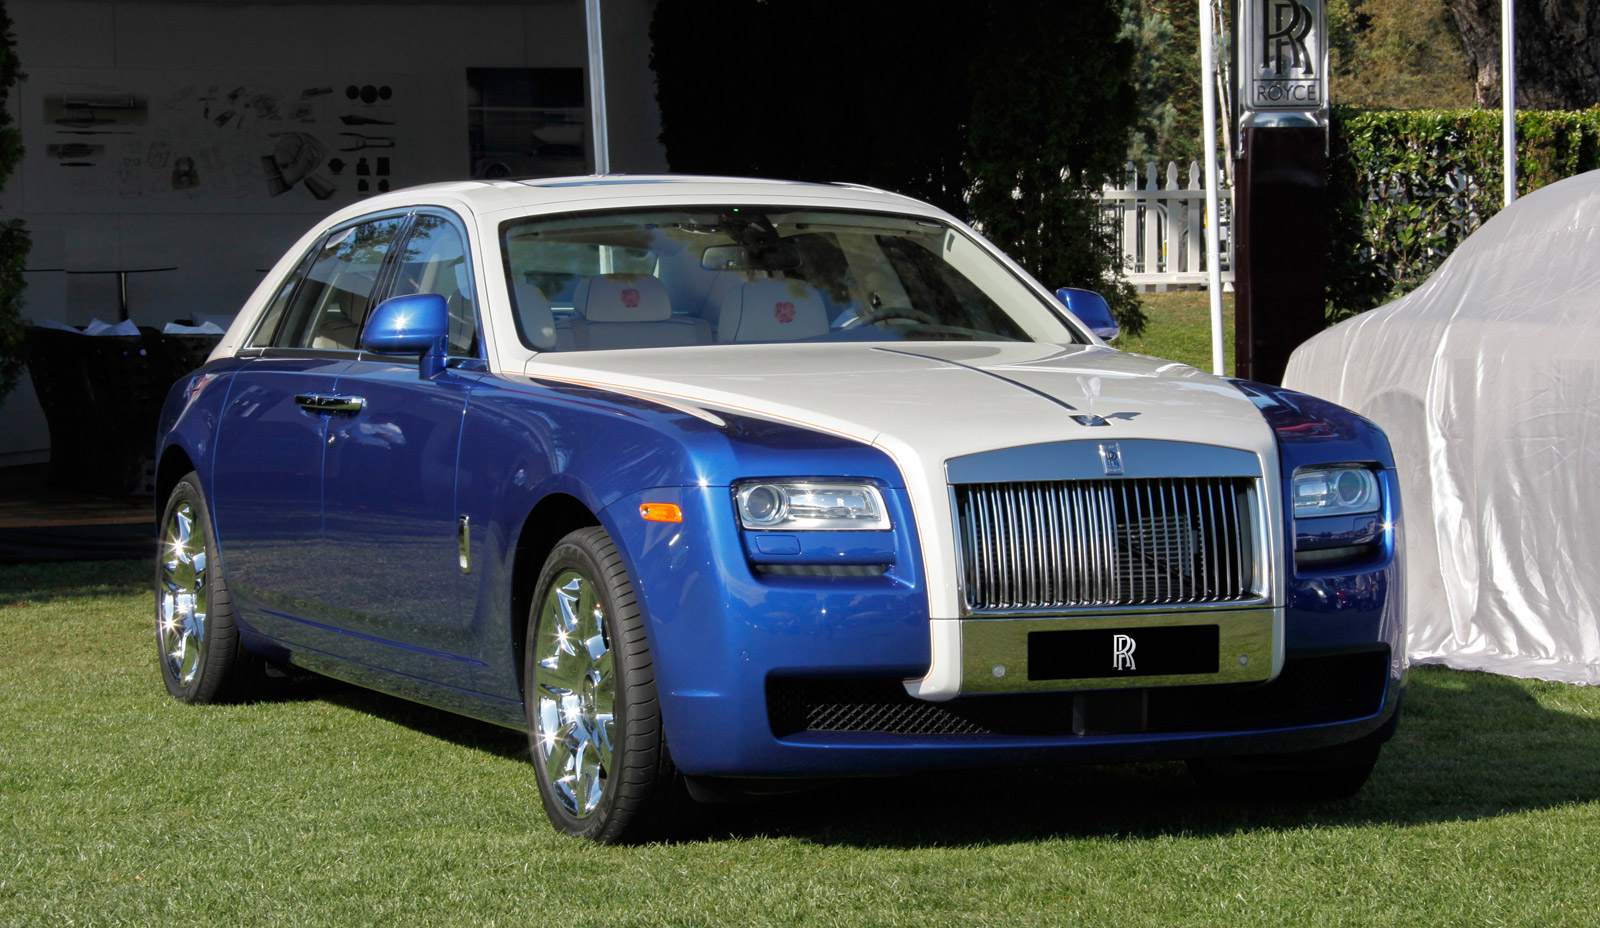 2013 Rolls-Royce Ghost Starting Price Rises To $260,750